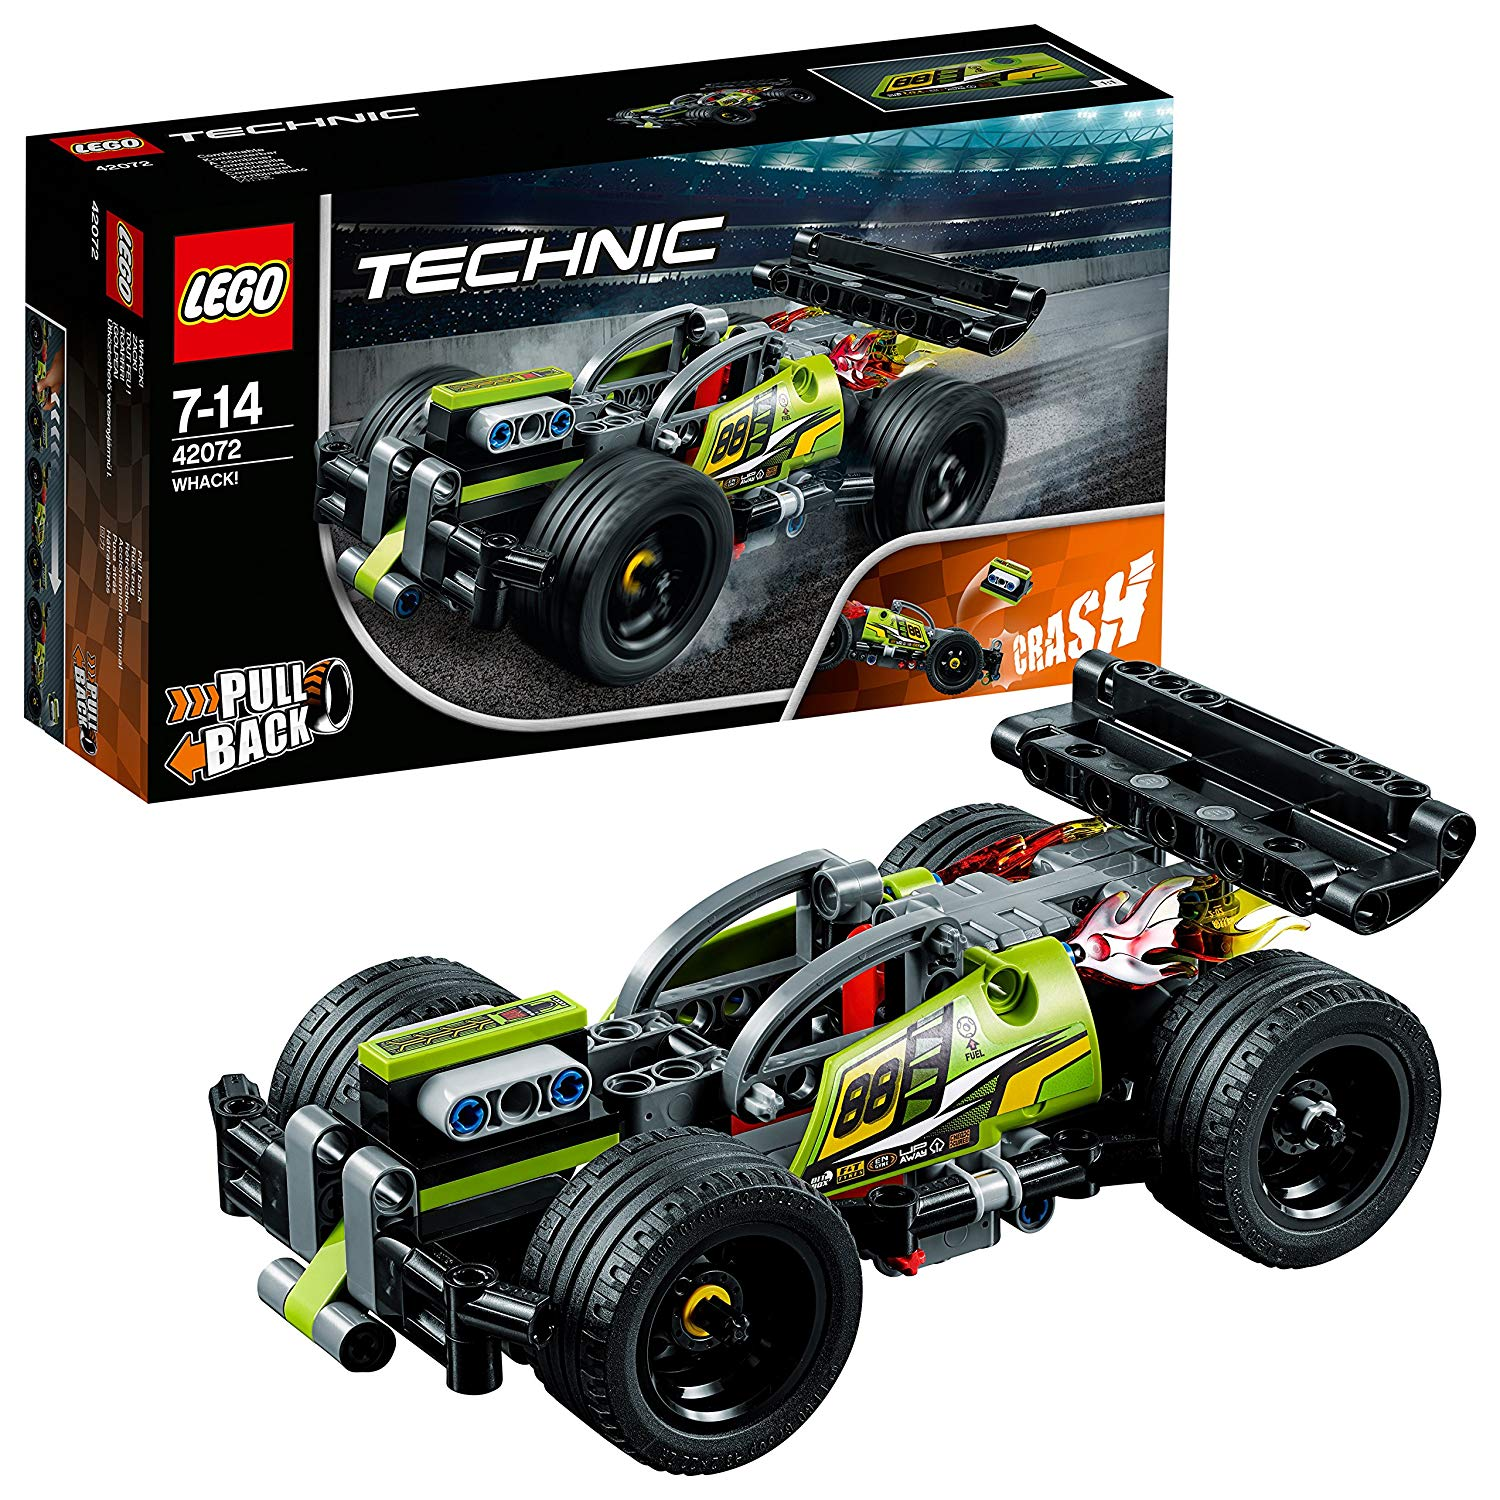 LEGO 42072 Technic WHACK! High-Speed Action Vehicles Building Set